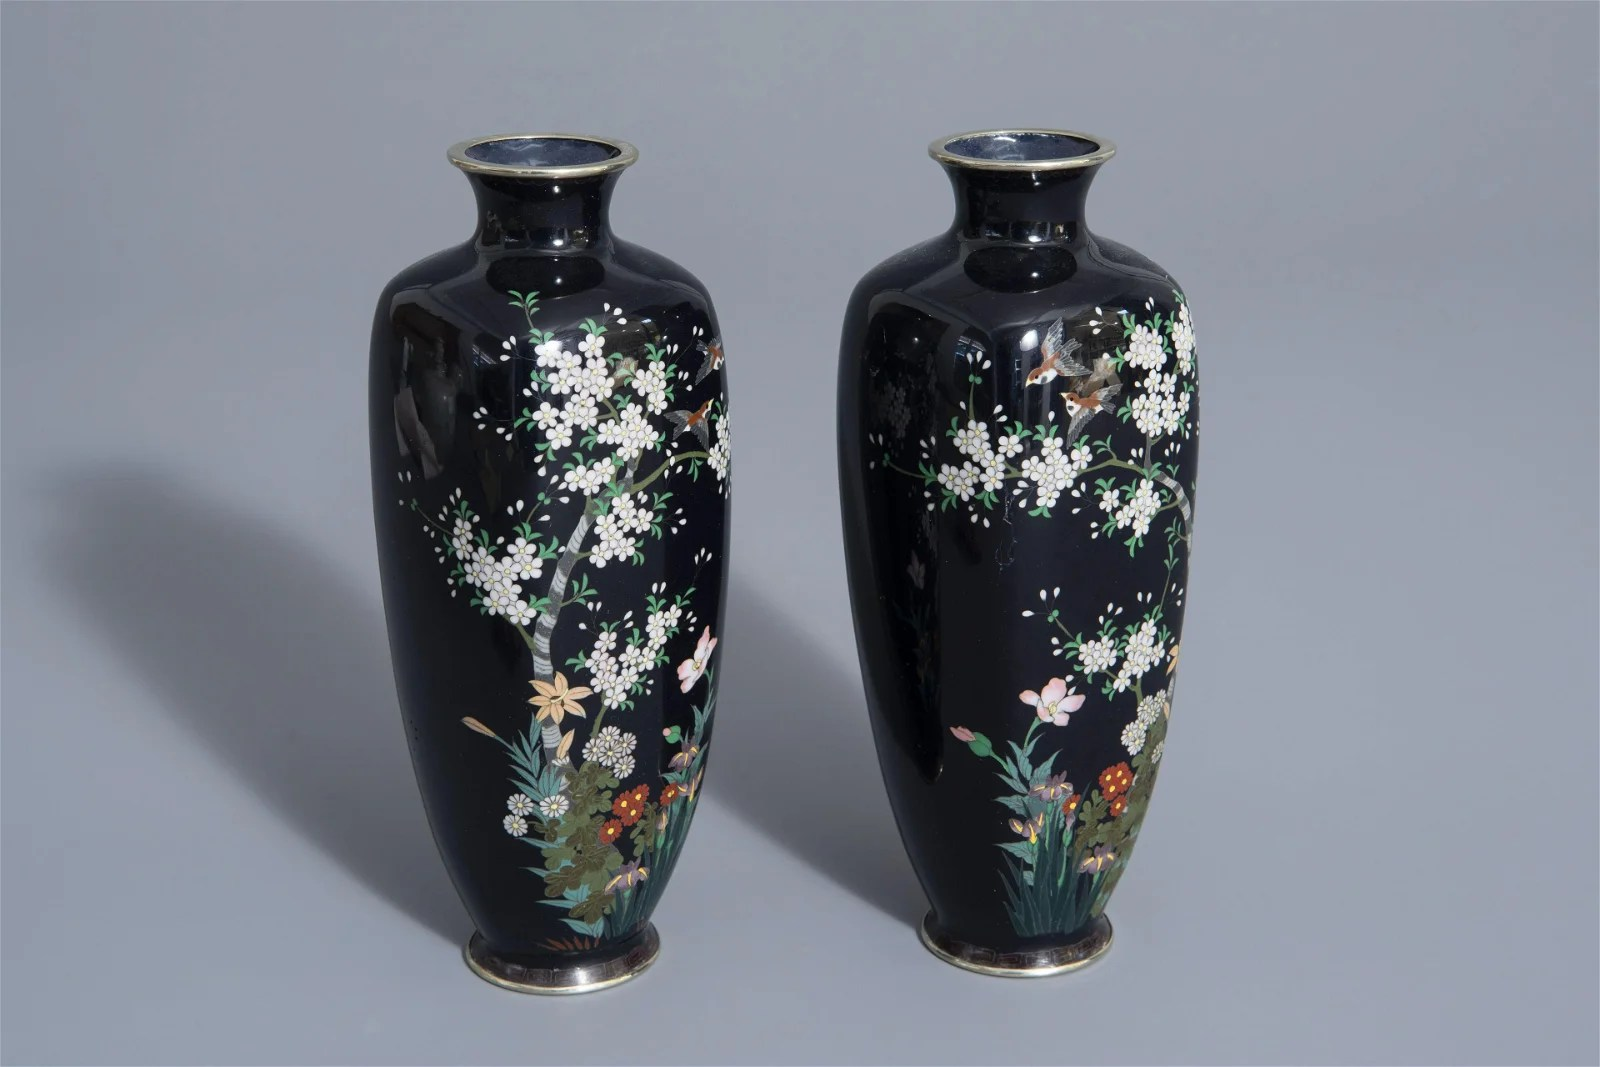 A pair of Japanese cloisonné vases with birds among